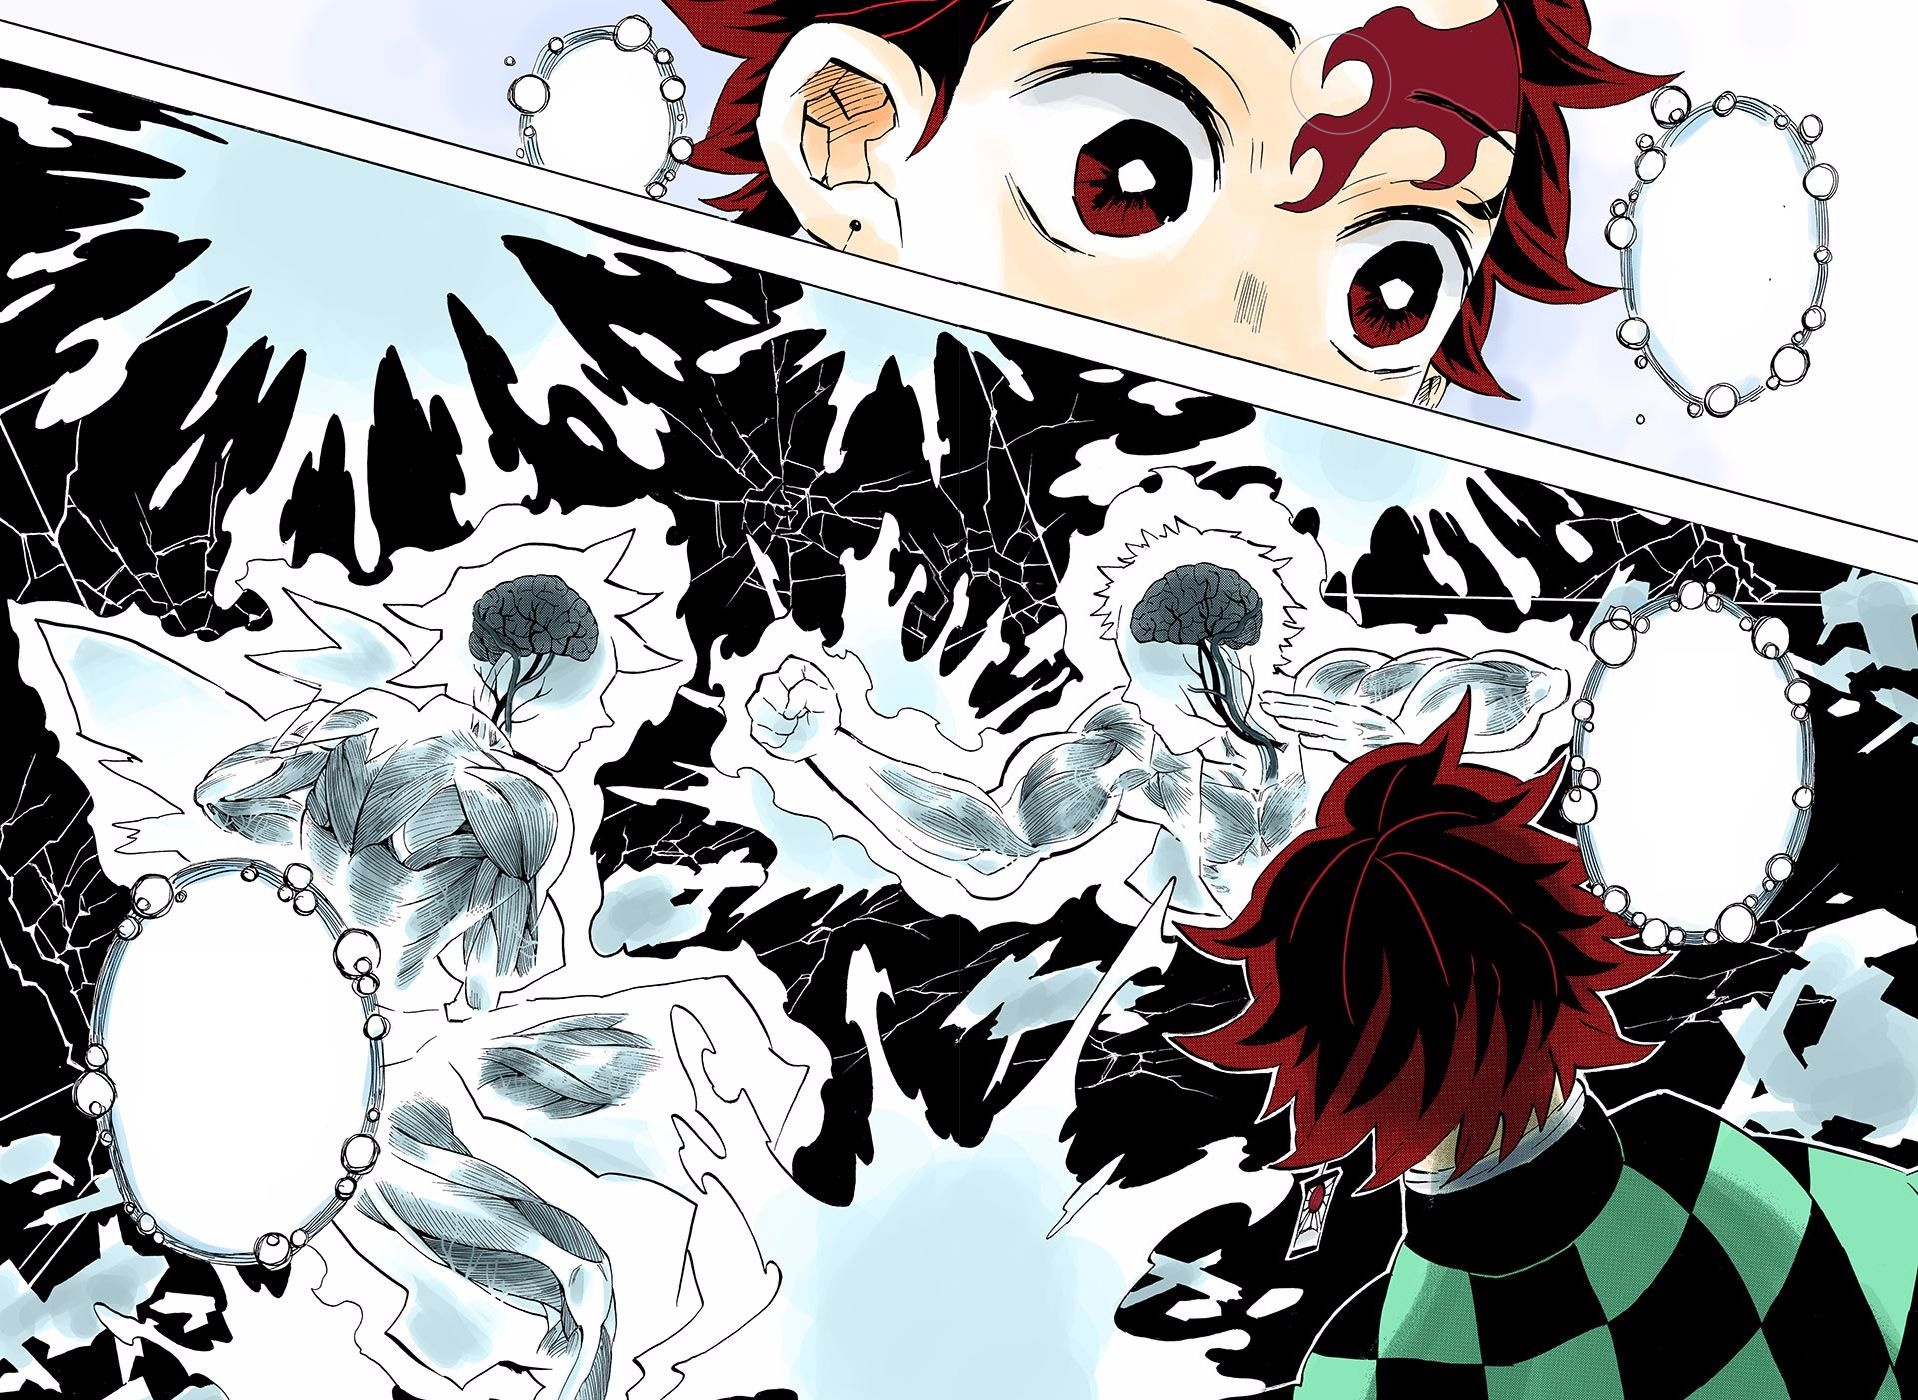 ALL GOOD MEMORIES START WITH FOUR FRINDS|KIMETSU REPORT|THE HUNTERS D9888b869146a184a18a3dcc54fb97a5